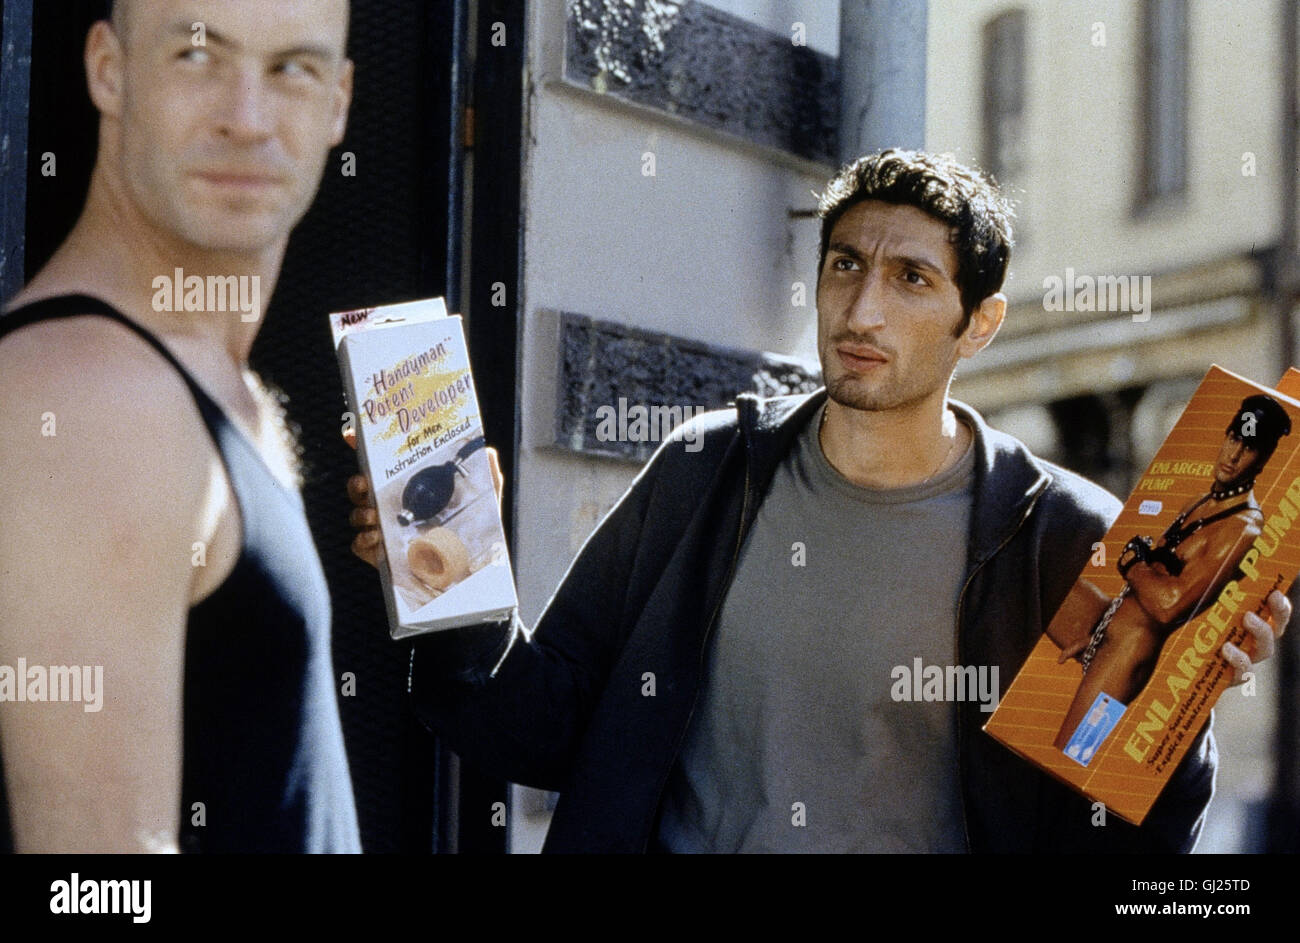 Fares fares stock photos fares fares stock images page 3 alamy kinostart am 20 september 2001 jalla jalla wer zu spt kommt roro ccuart Choice Image